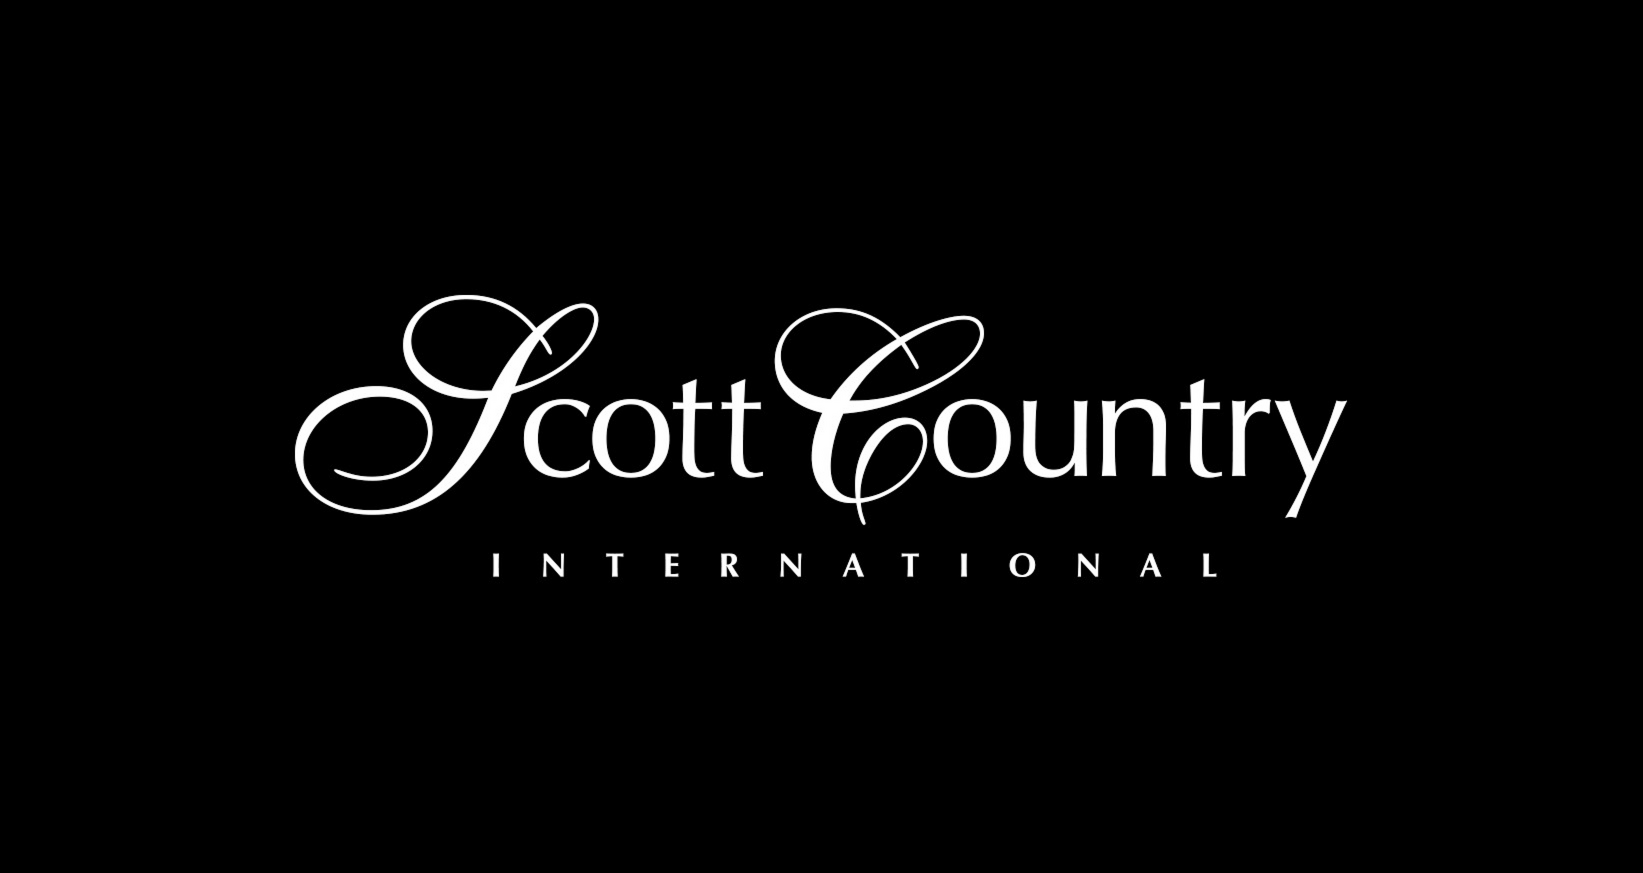 Scott Country